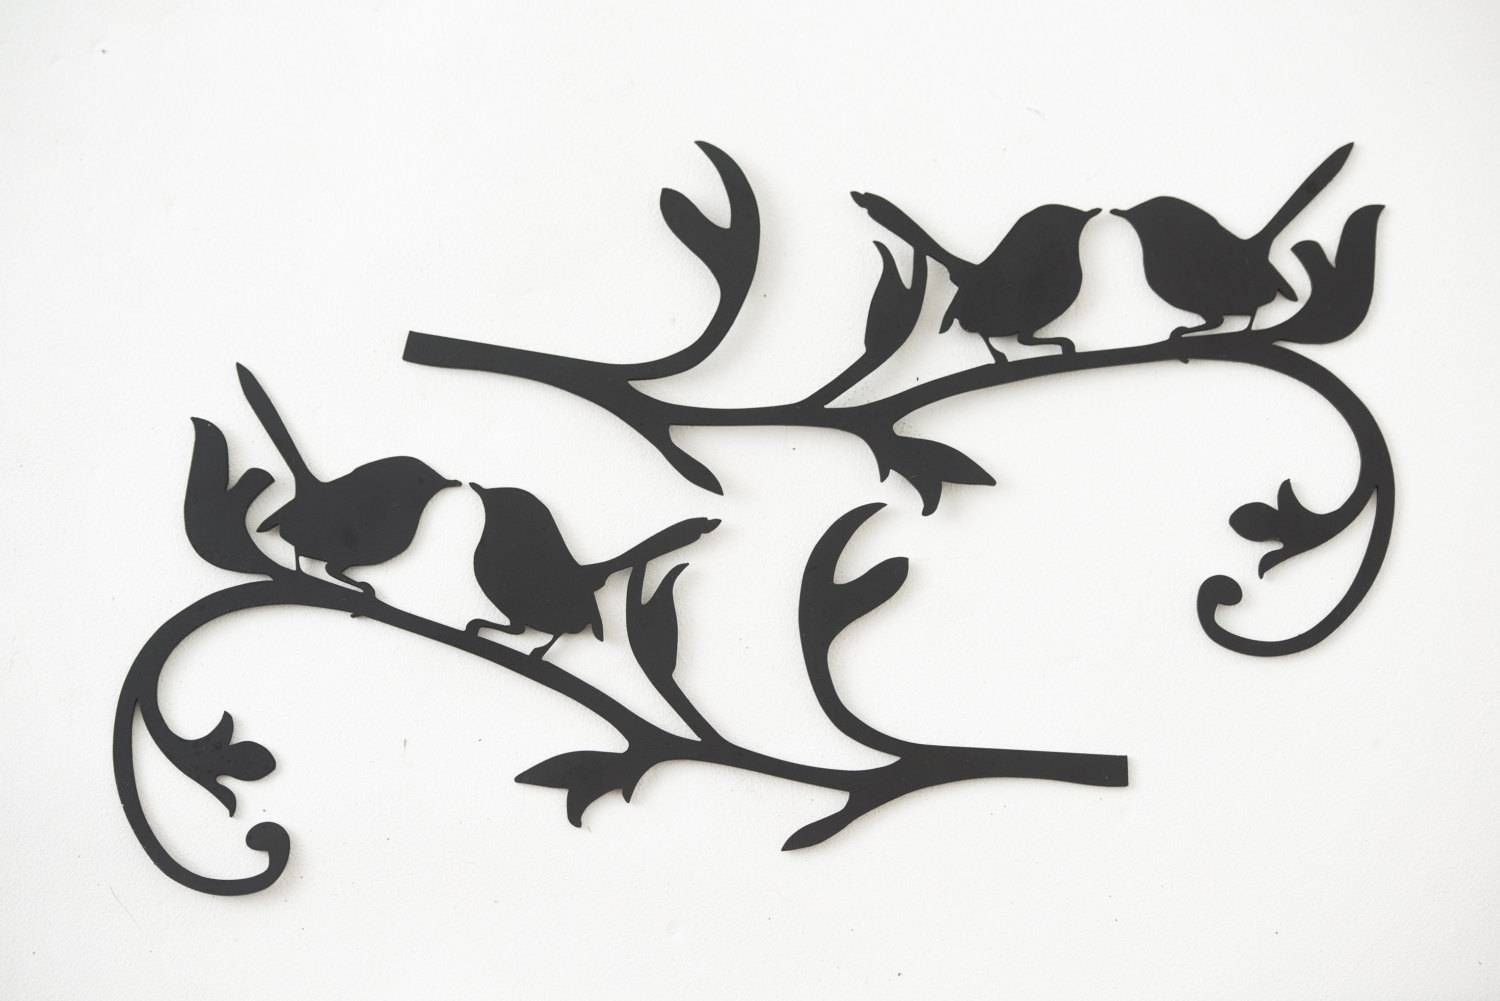 Wall Art Designs: Metal Bird Wall Art Hand Drawn And Laser Cut With Regard To Most Popular Branches Metal Wall Art (View 11 of 20)